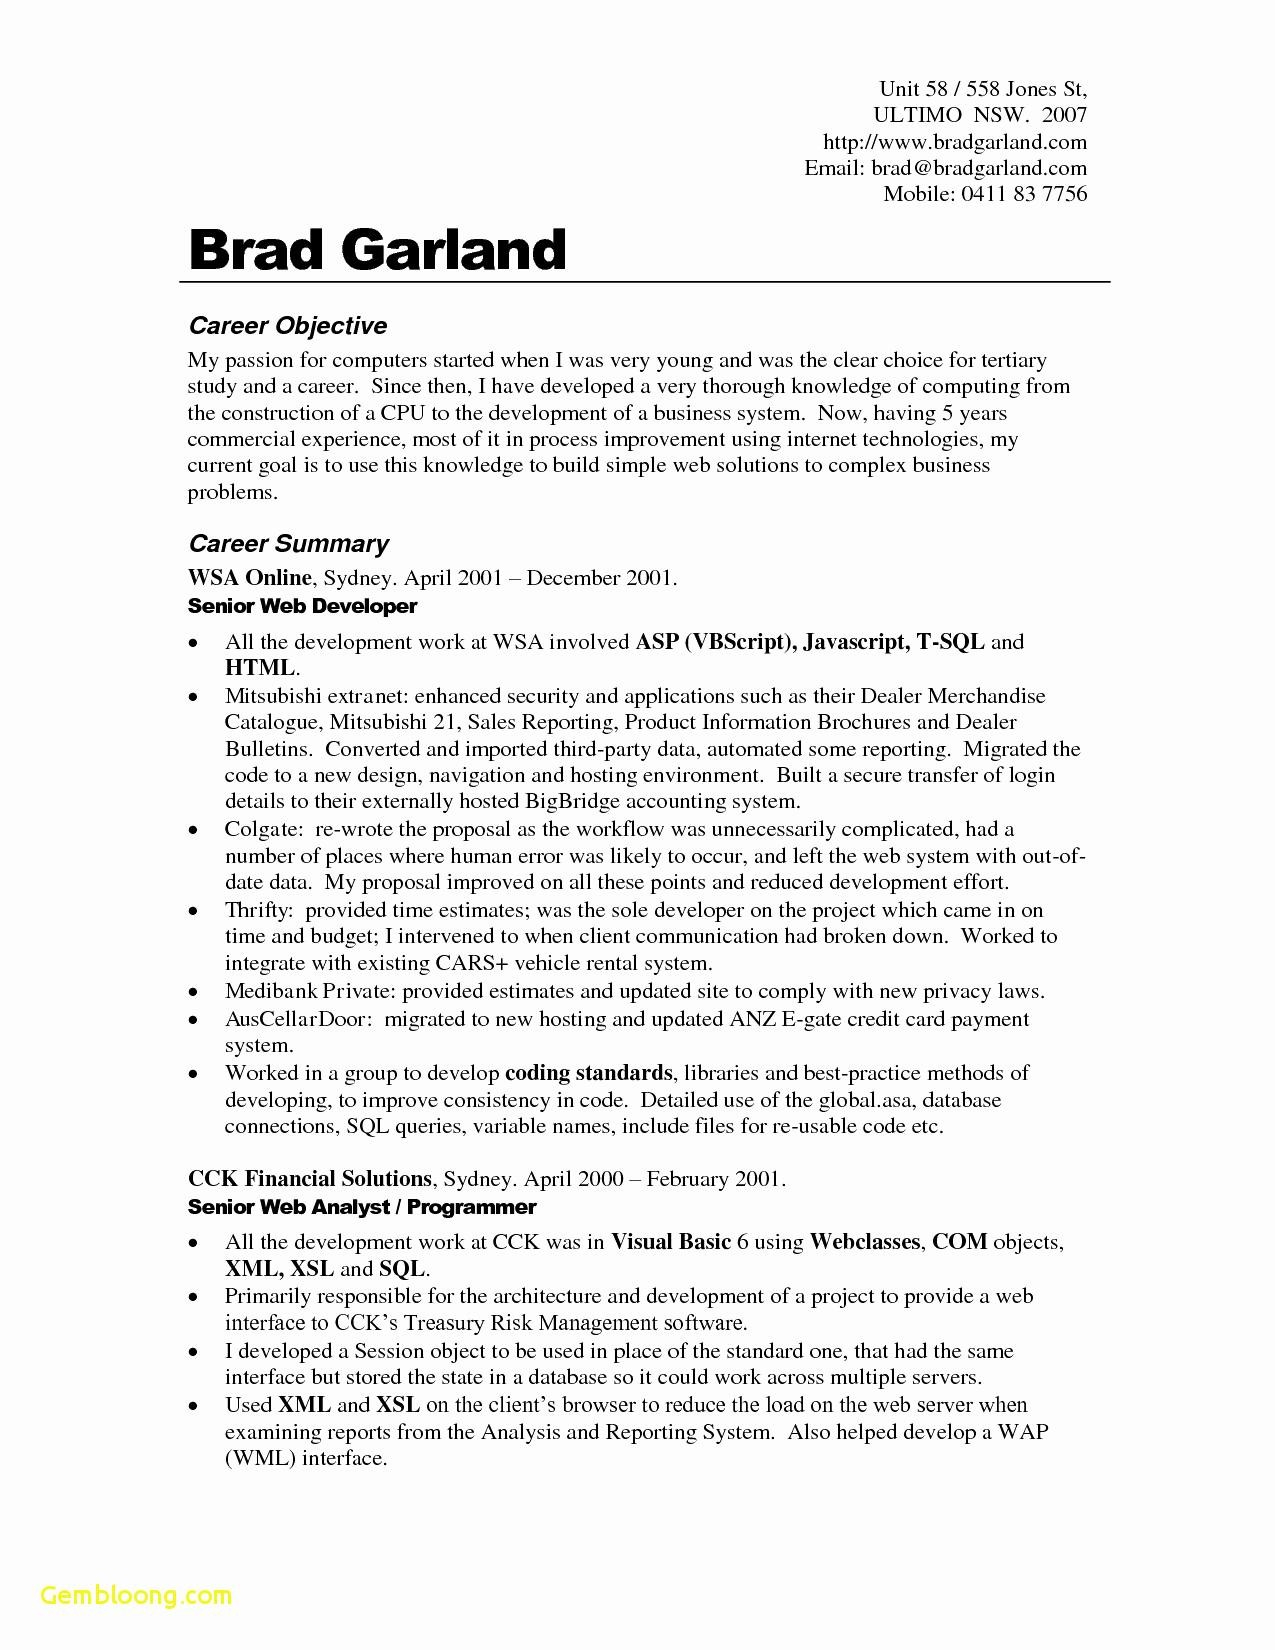 Chronological Resume Template - Professional Resume Template Download New Chronological Resume